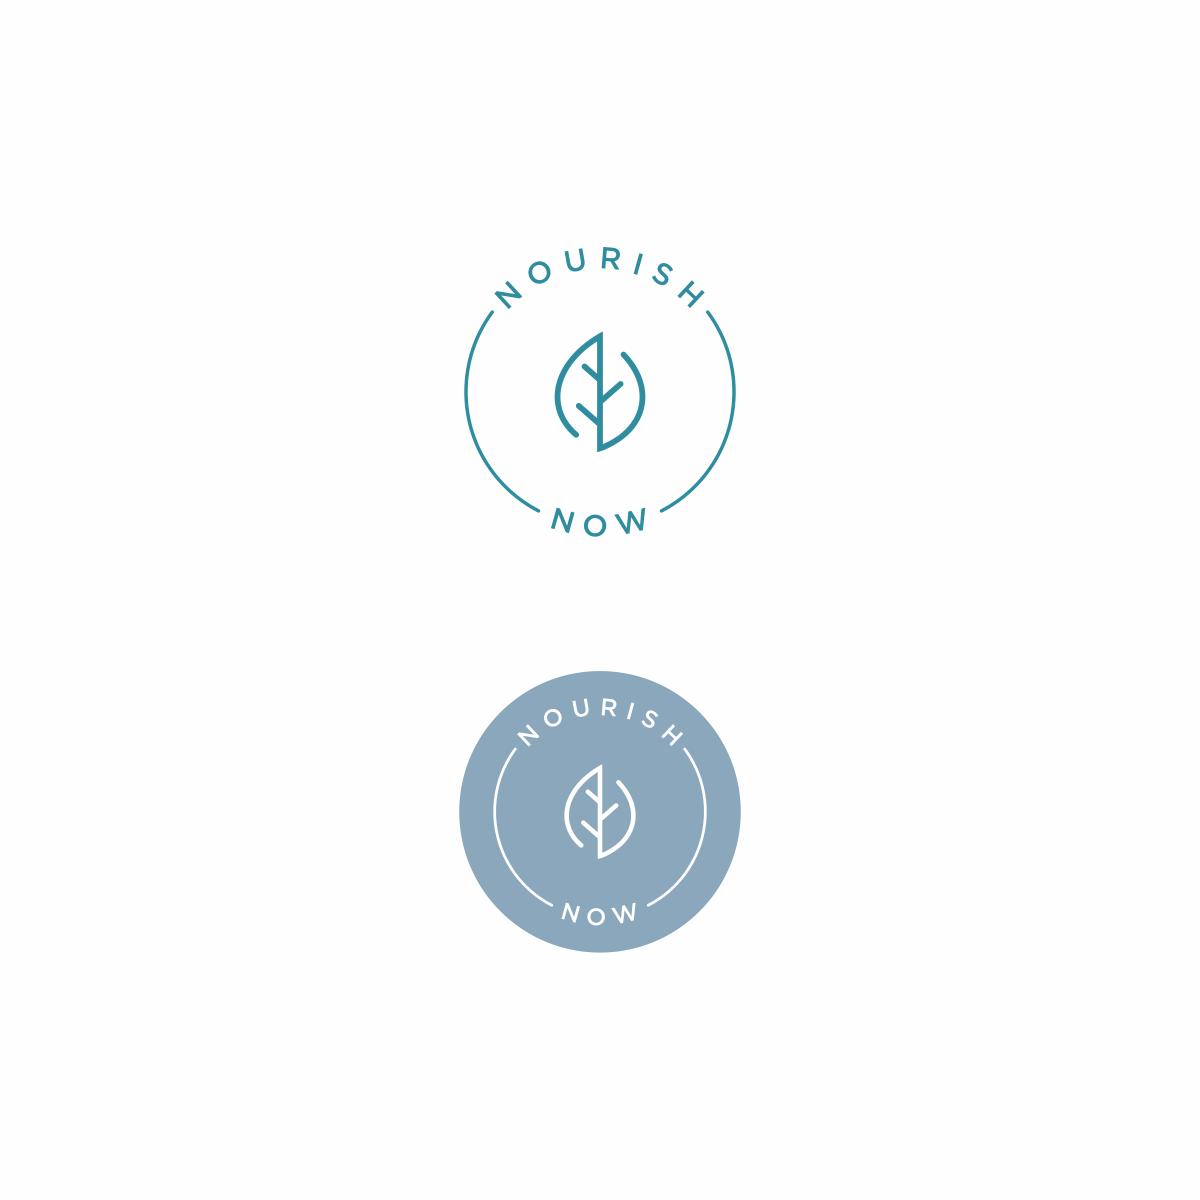 A health event business need a classy interior design inspired logo